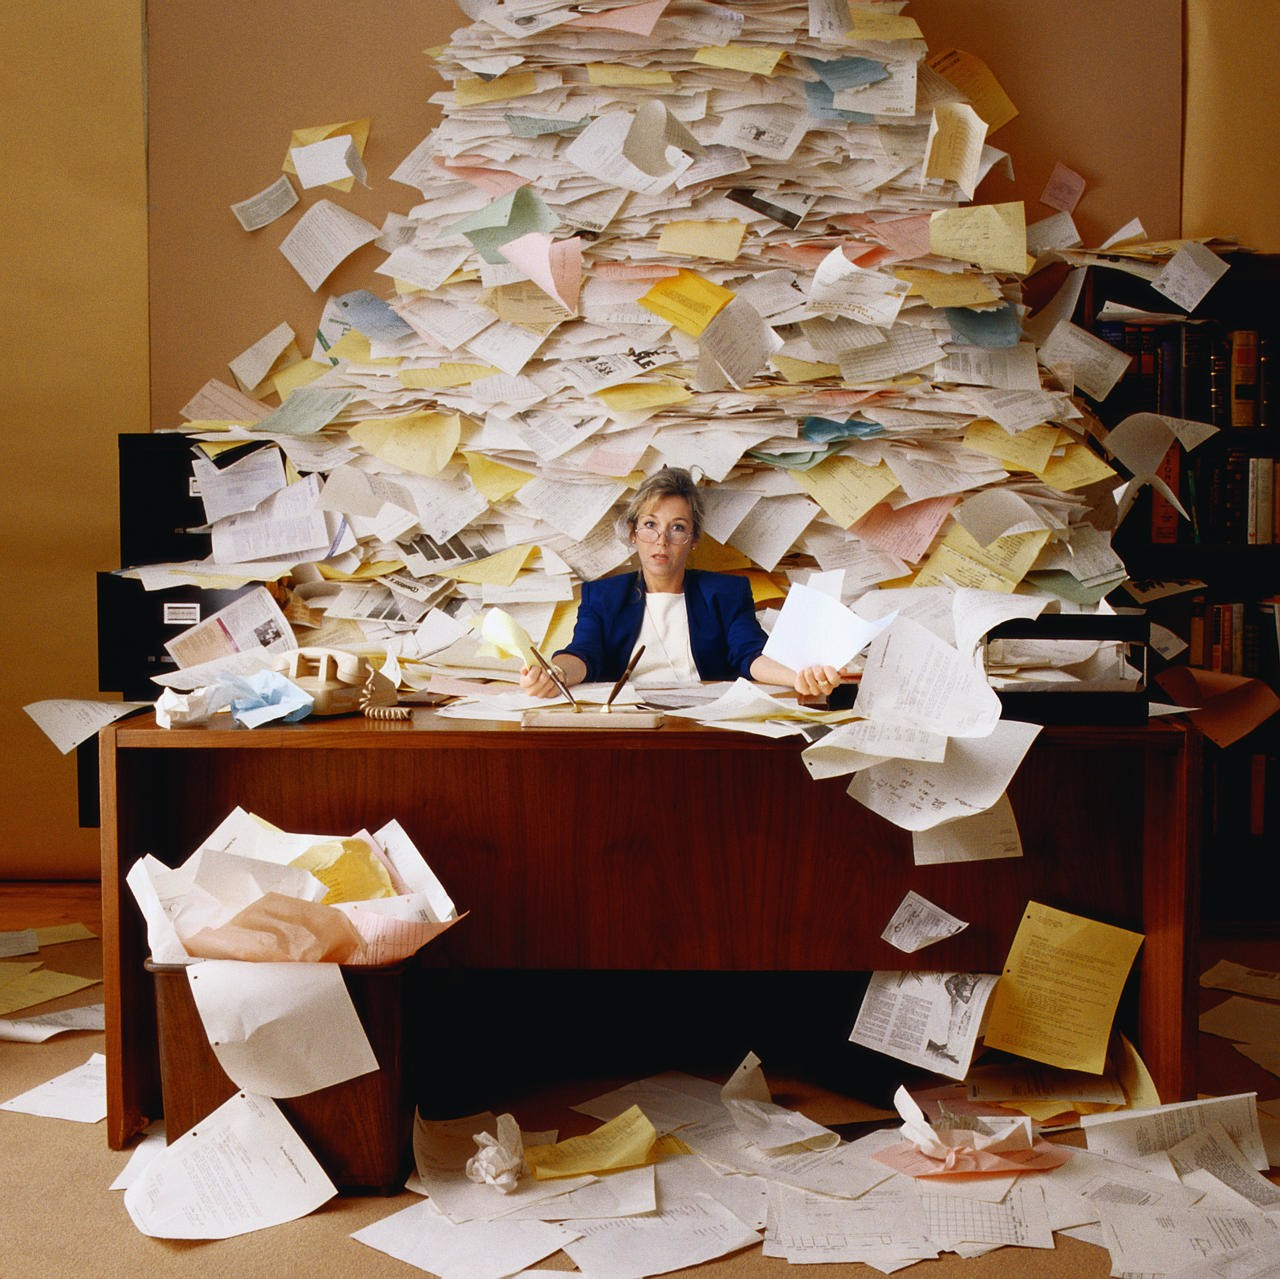 Office Worker with Mountain of Paperwork